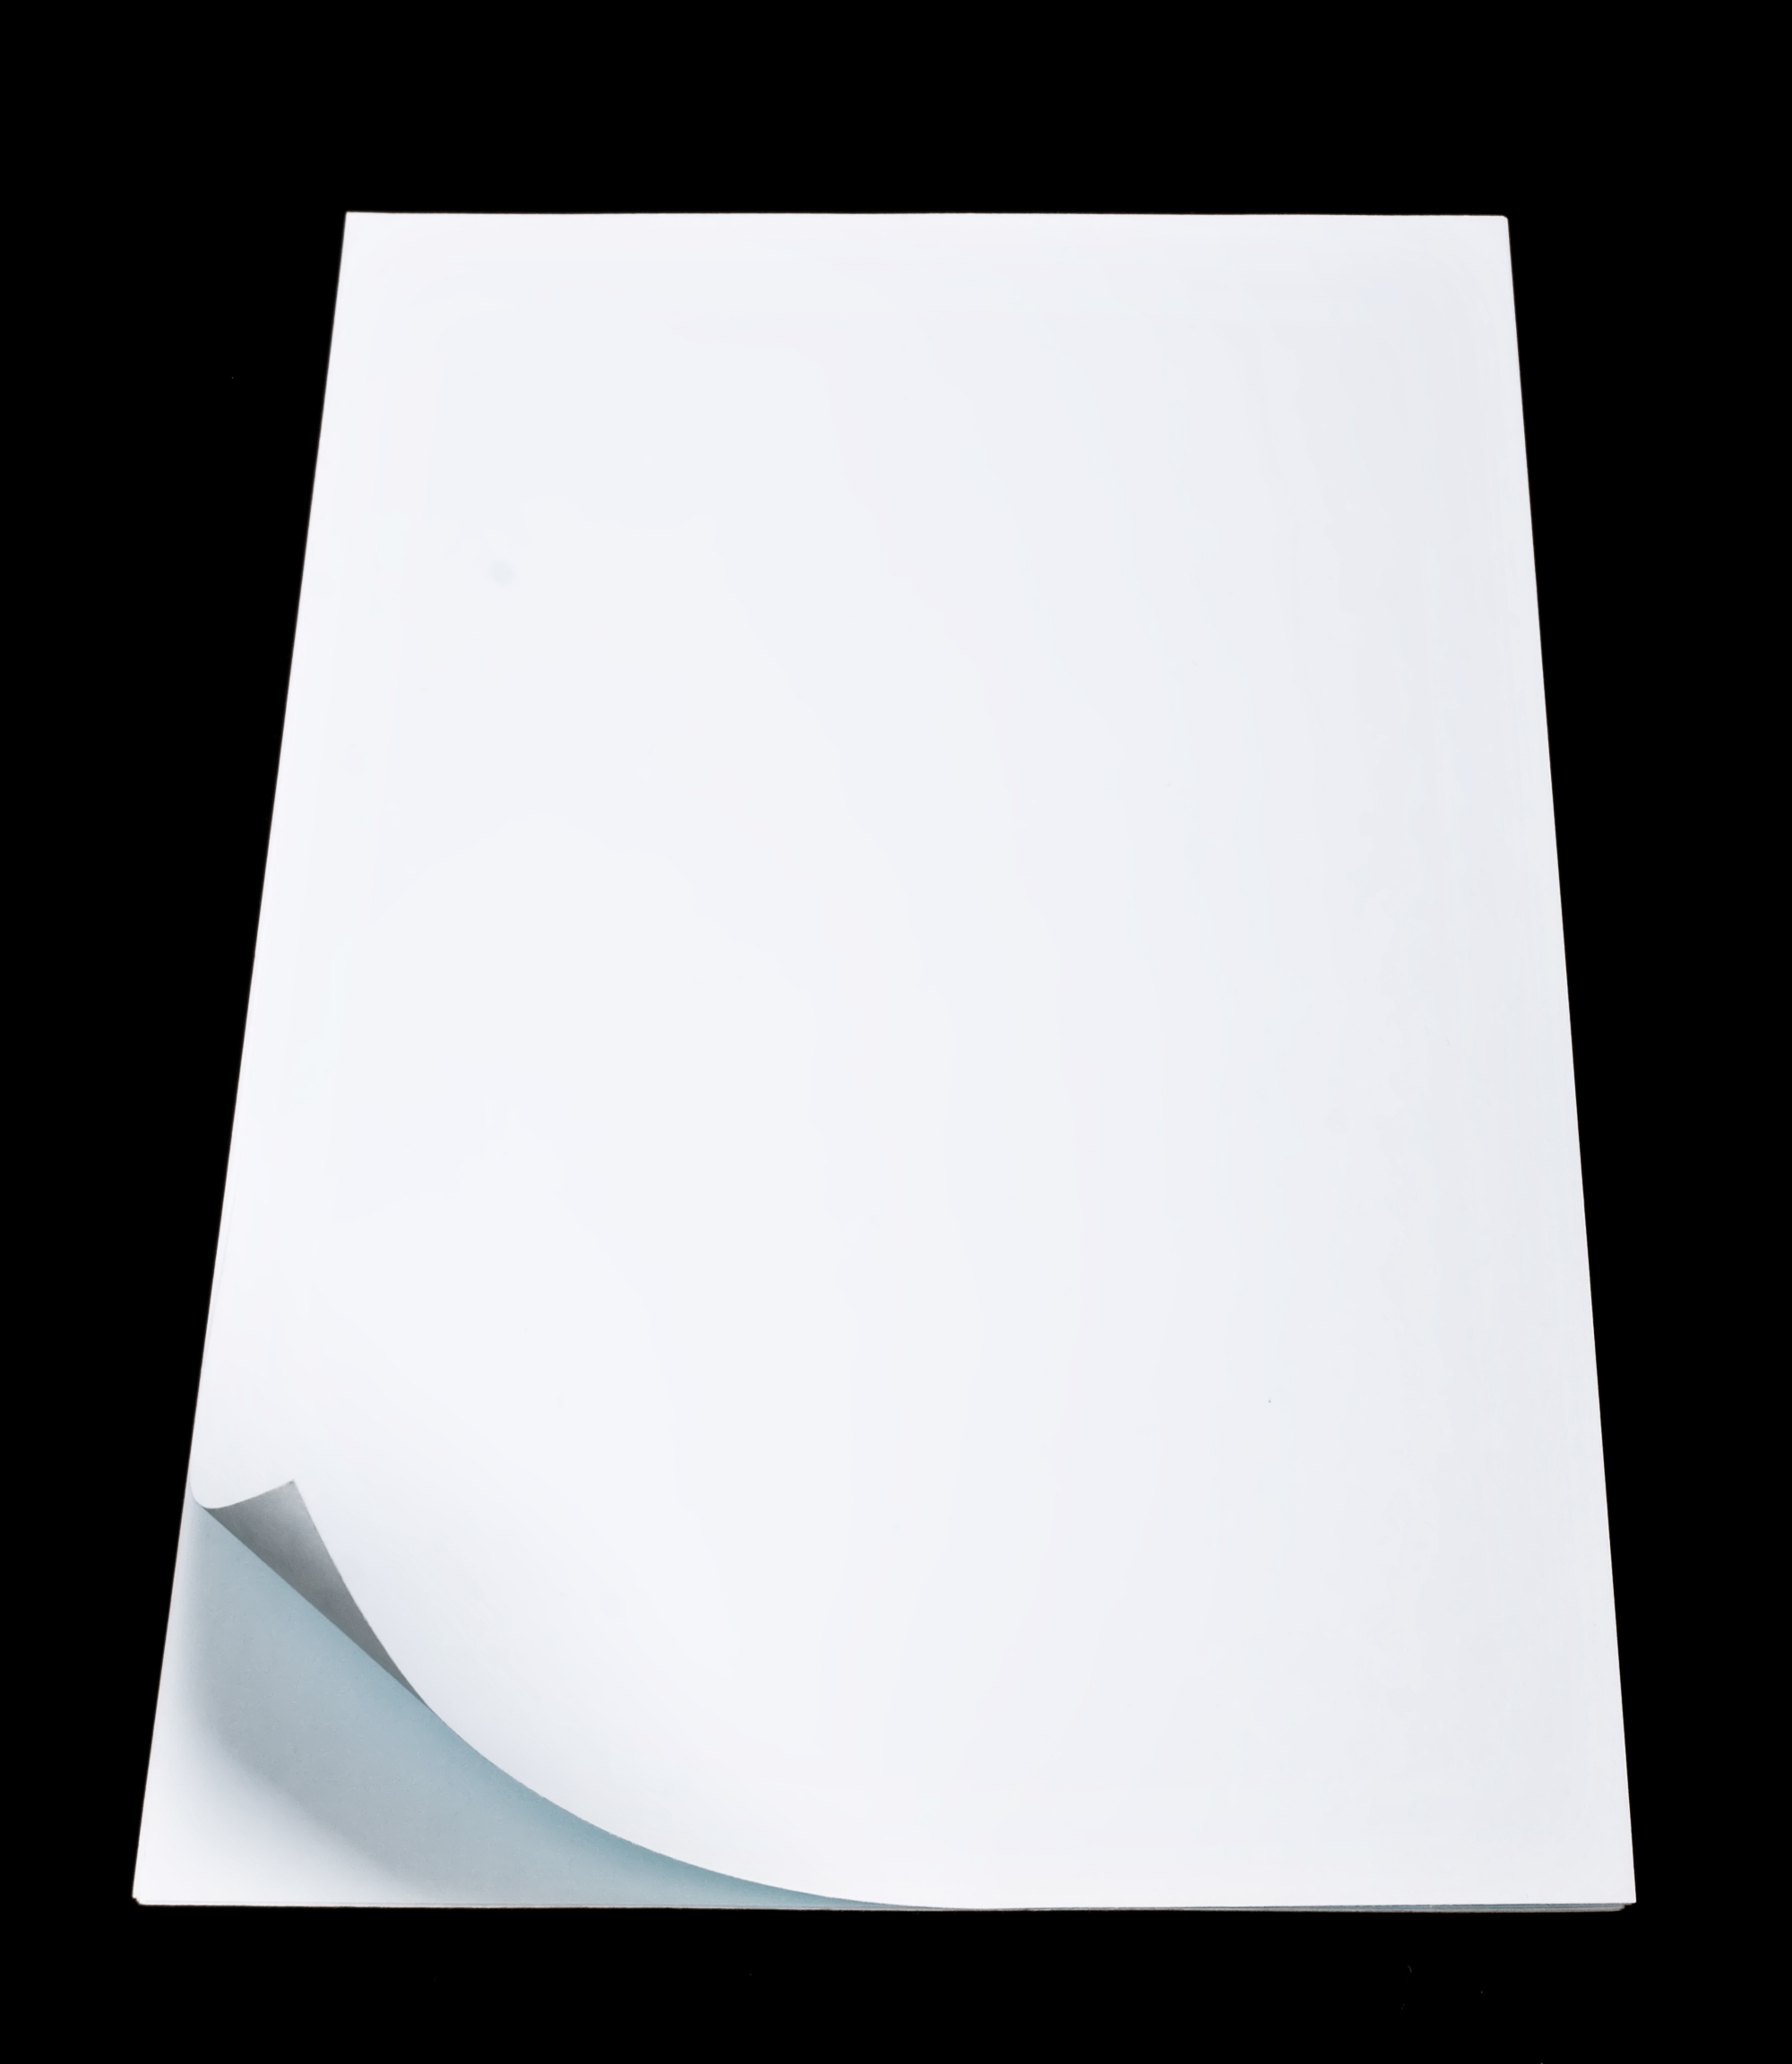 Curled White Paper, Abstract, Parchment, Notebook, Notepad, HQ Photo